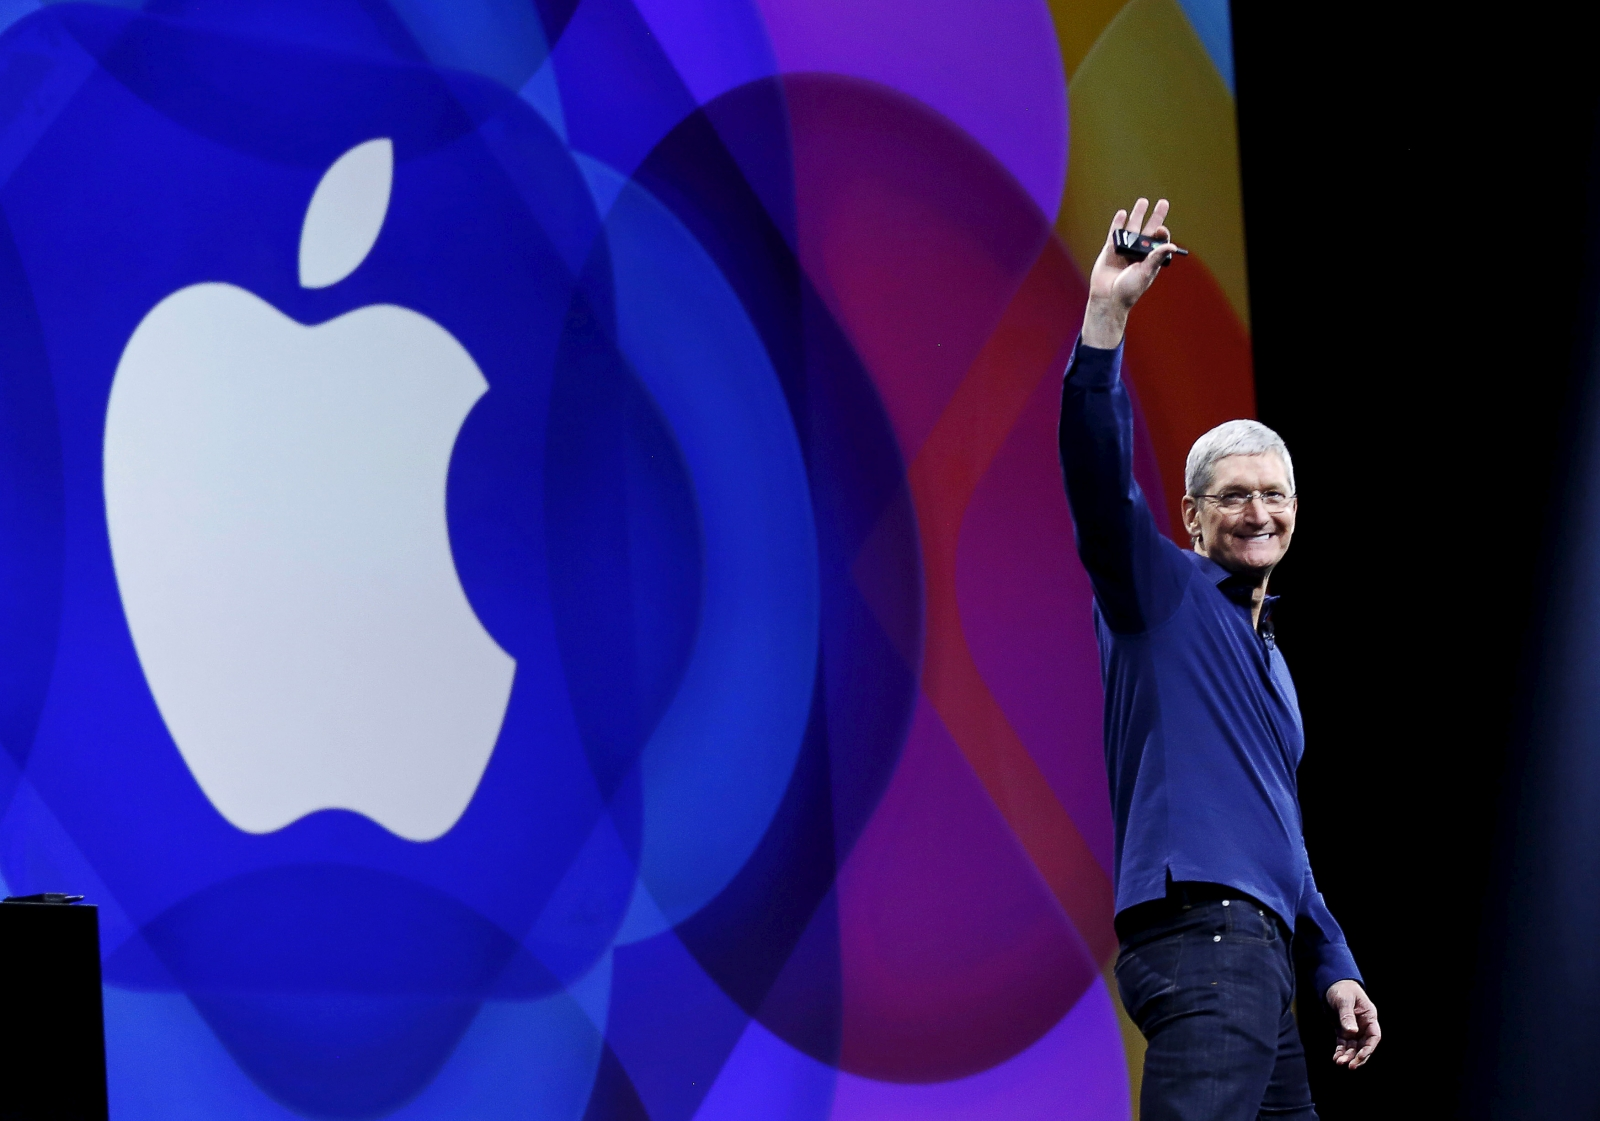 Apple To Invest $1B In US Manufacturing